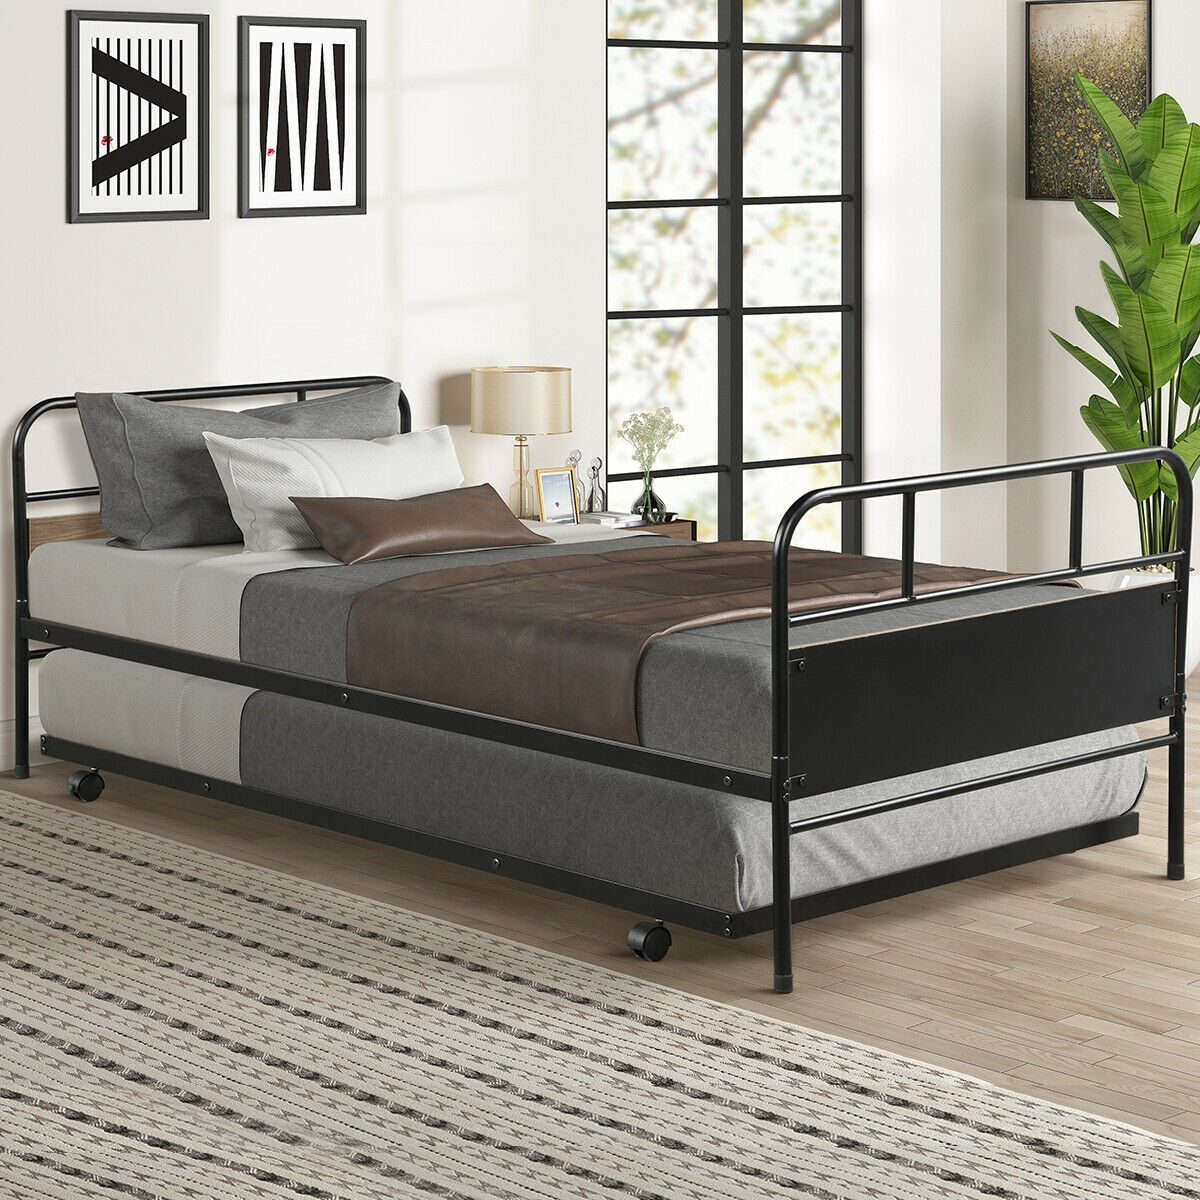 Image of Twin Daybed &Trundle Frame Set Premium Steel